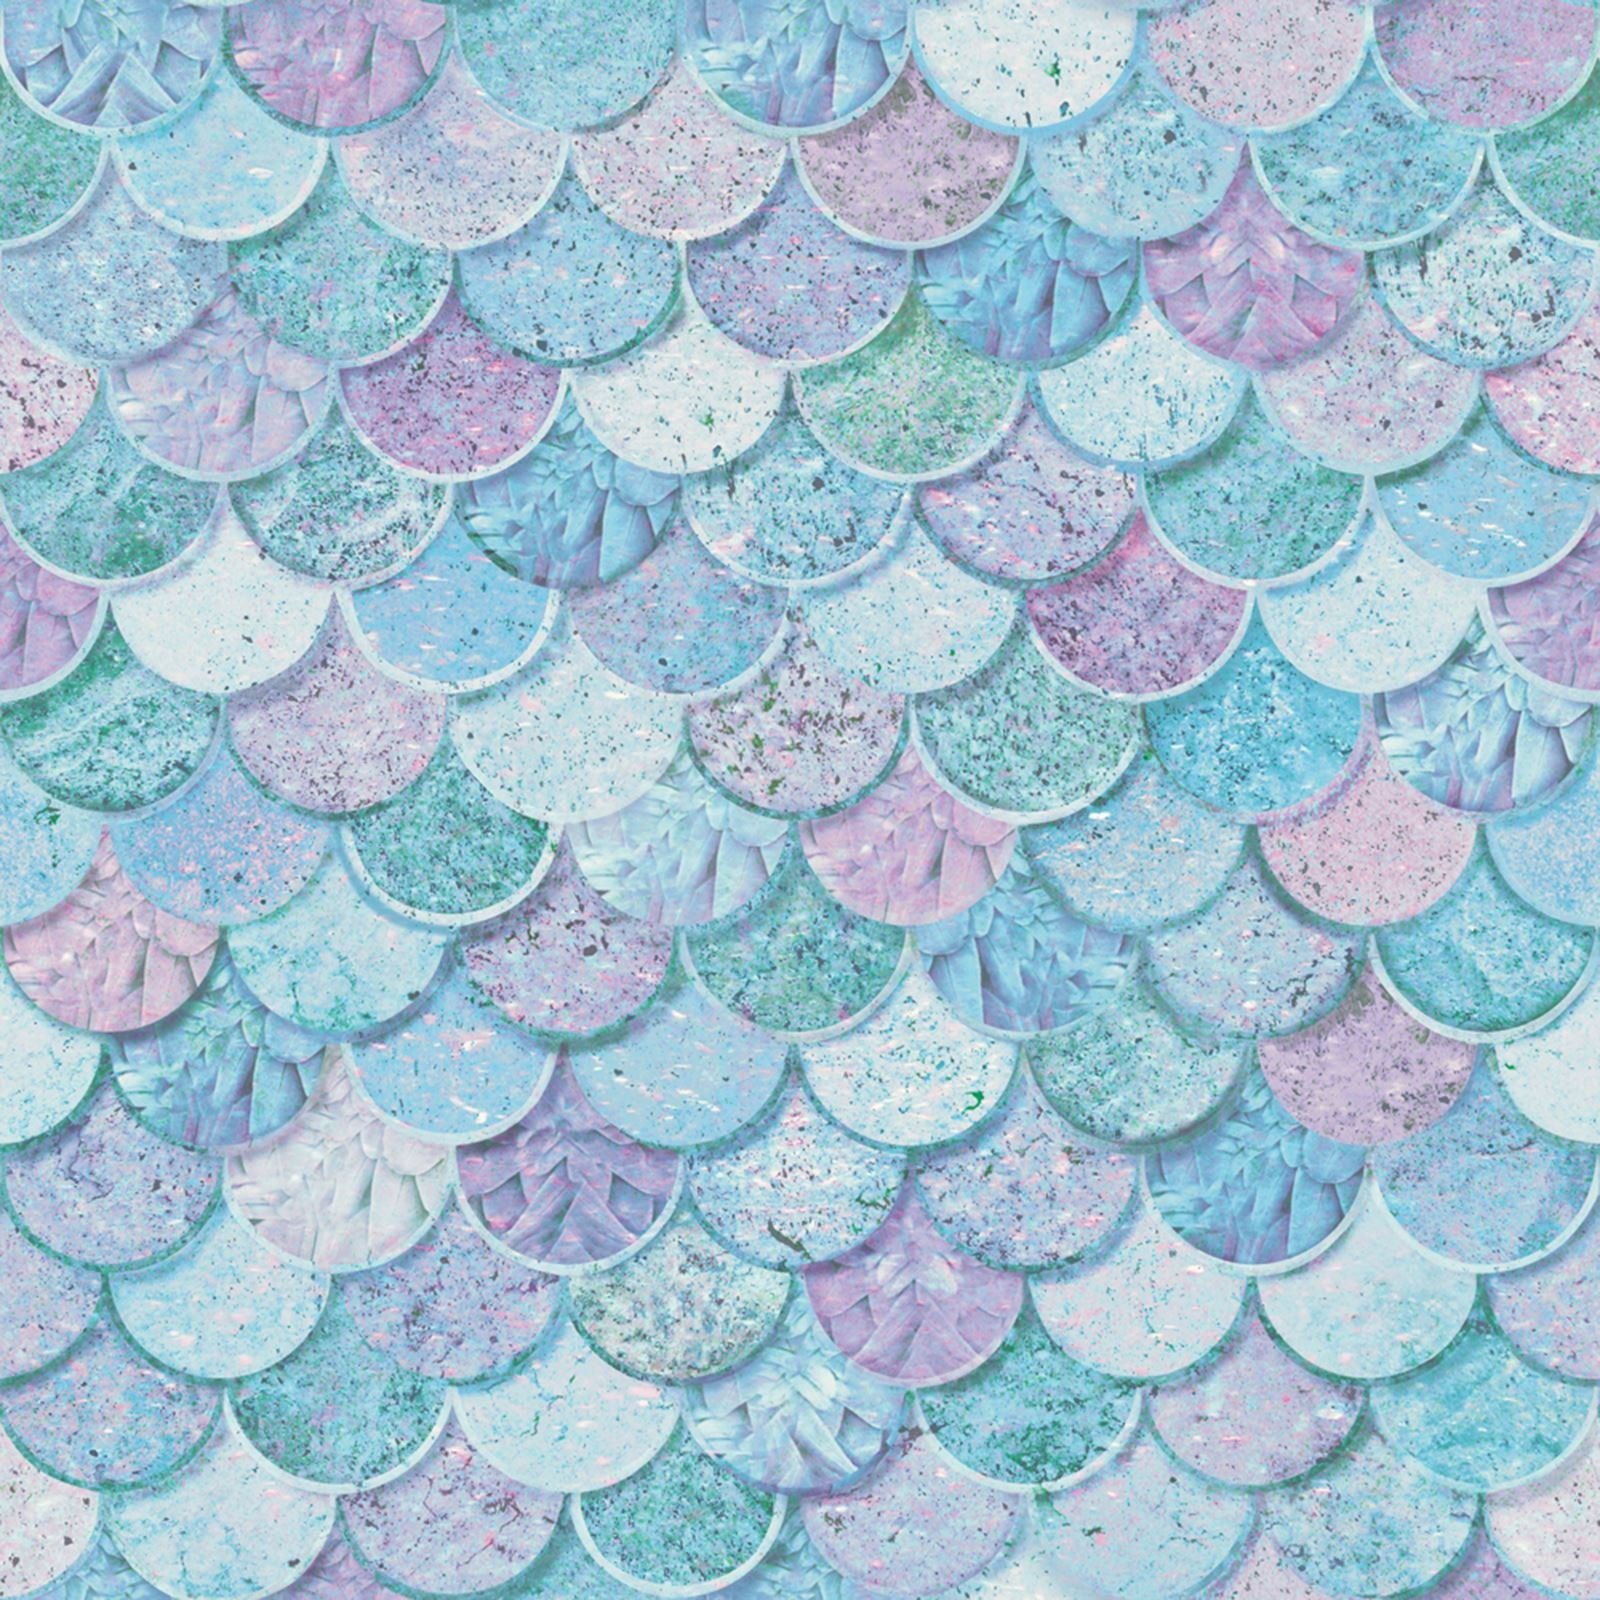 Mermazing Mermaid Scales Glitter Wallpaper Arthouse 698305 Ice Blue